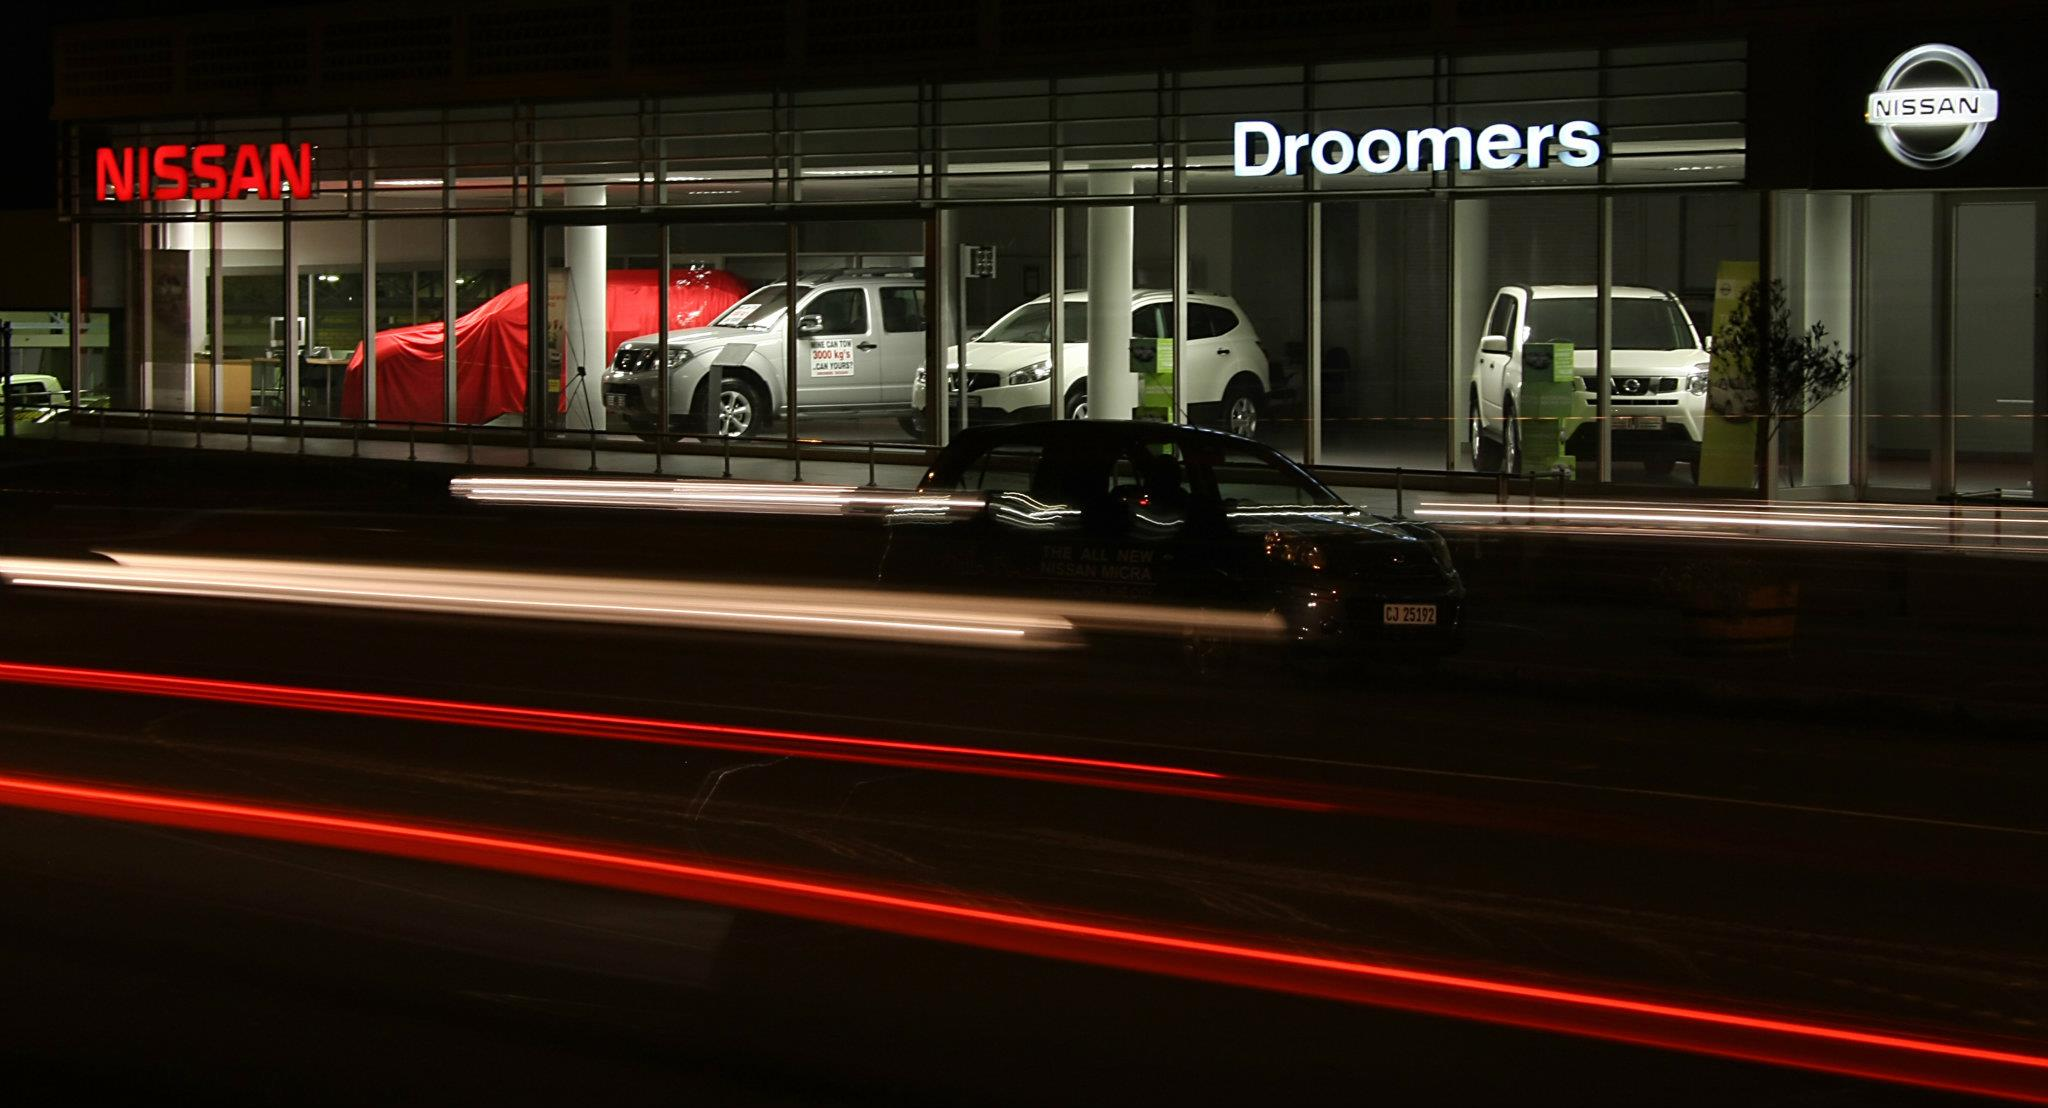 Droomers Nissan Paarl